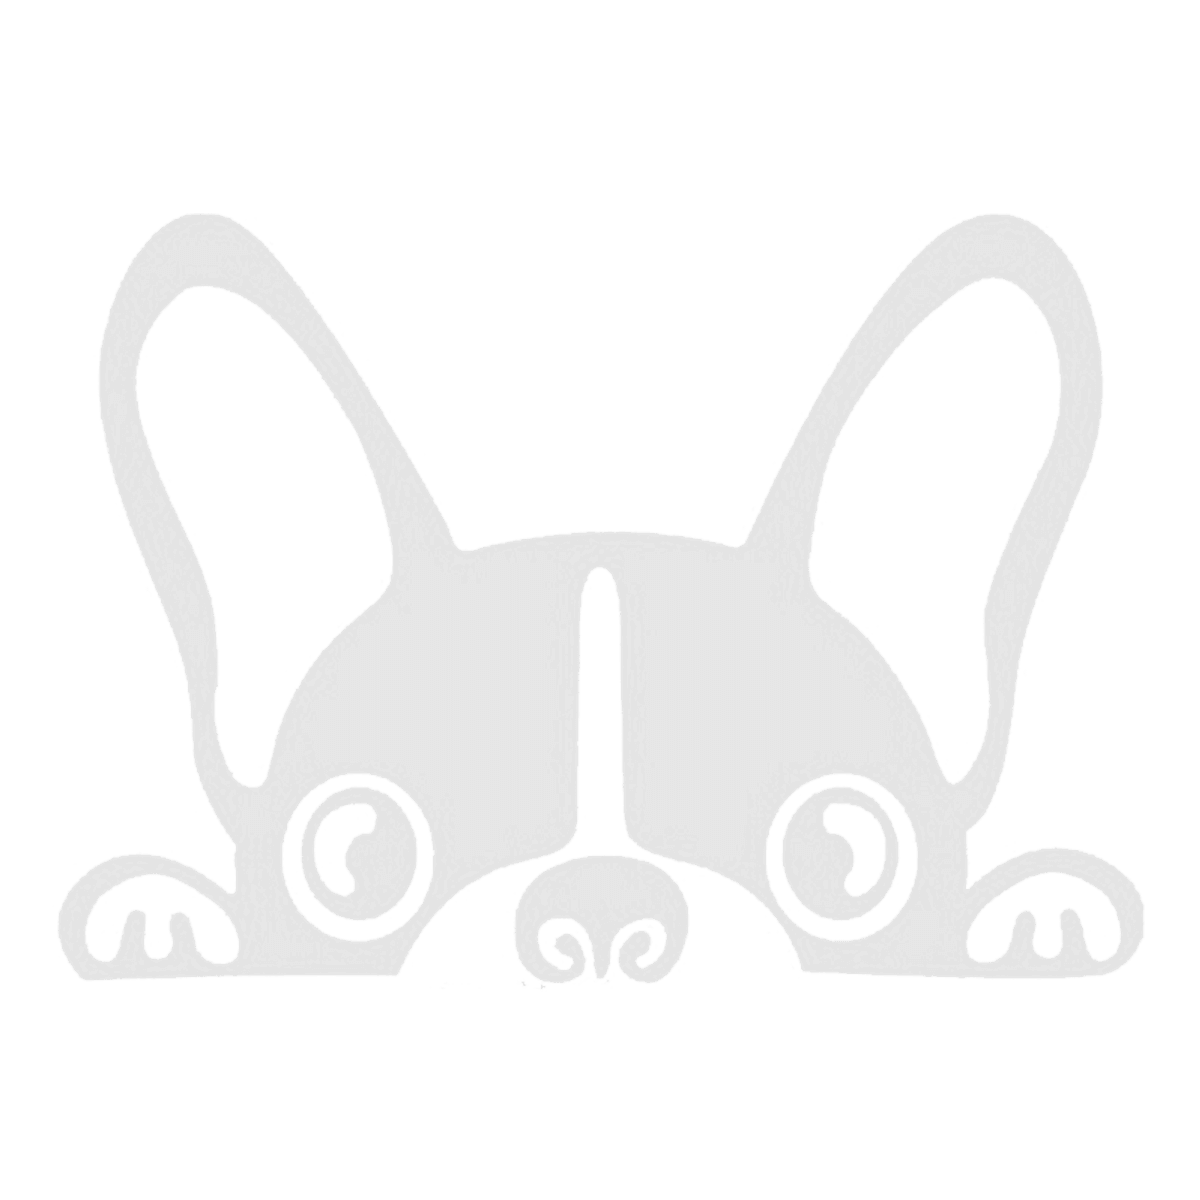 Free boston terrier with crown clipart jpg black and white library Cute Peeking Dog Decal | Animal CRICUT Templates | Pinterest | Products jpg black and white library